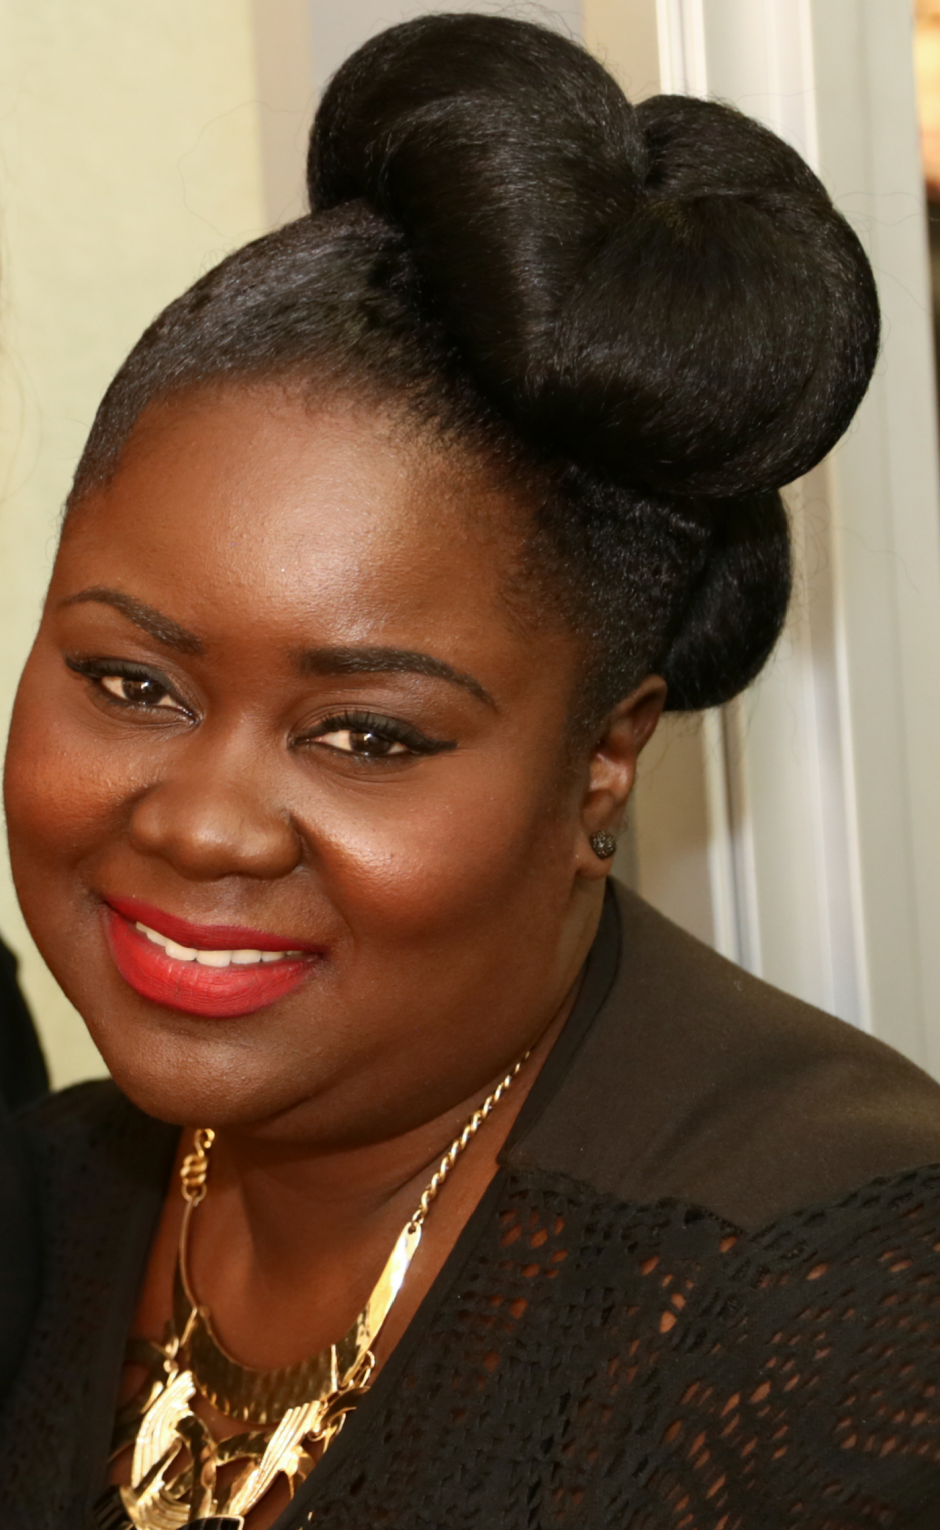 Gracelyn Fraser, Beauty Blogger and Founder of Brown Sugar Beauti (Image courtesy of Brown Sugar Beauti)